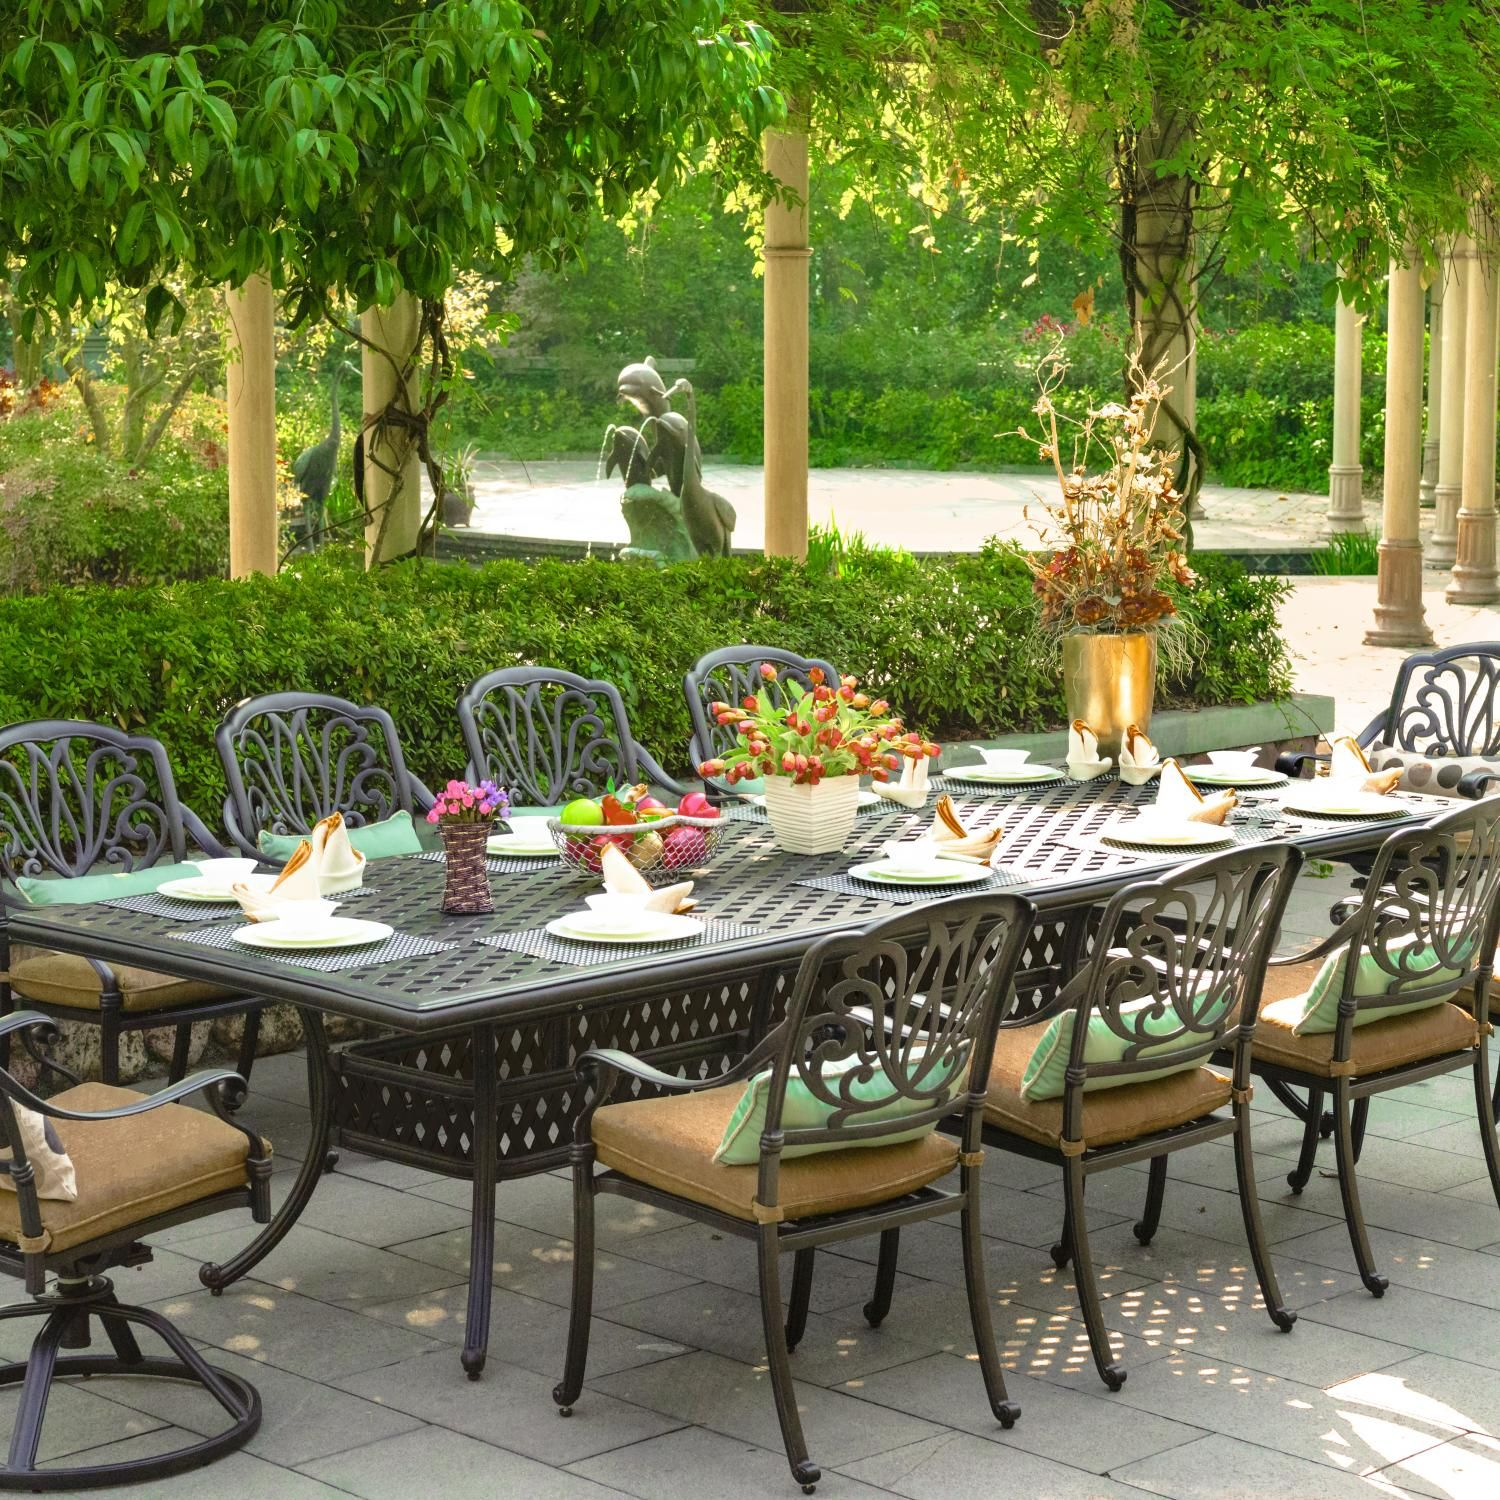 Add elegance to your outdoor dining with this cast aluminum patio